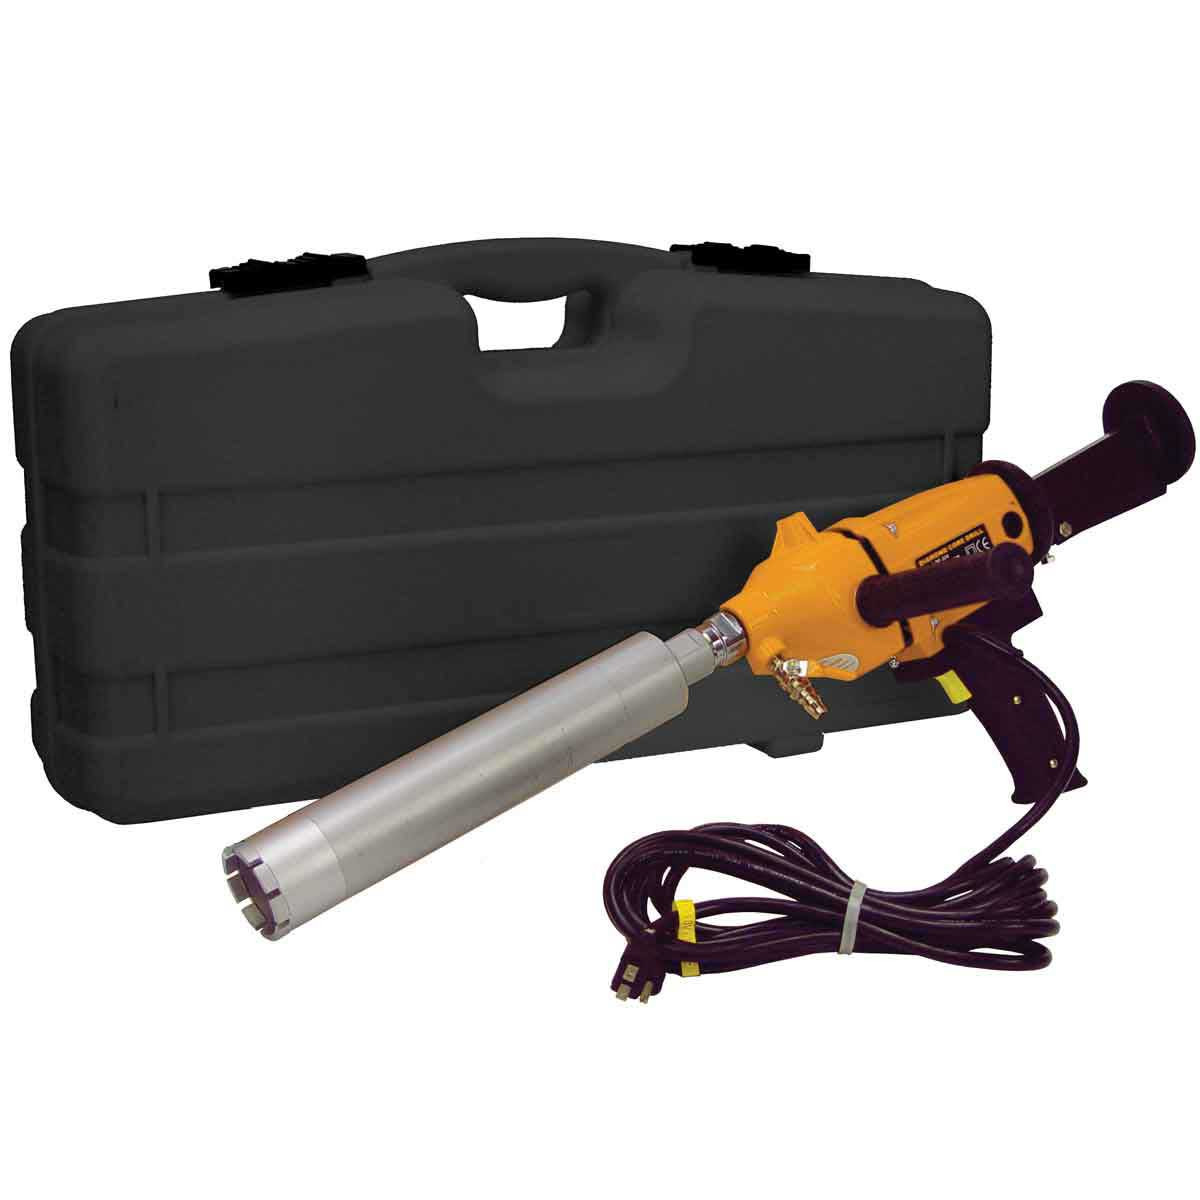 Multiquip CDM1H Wet Core Drill case